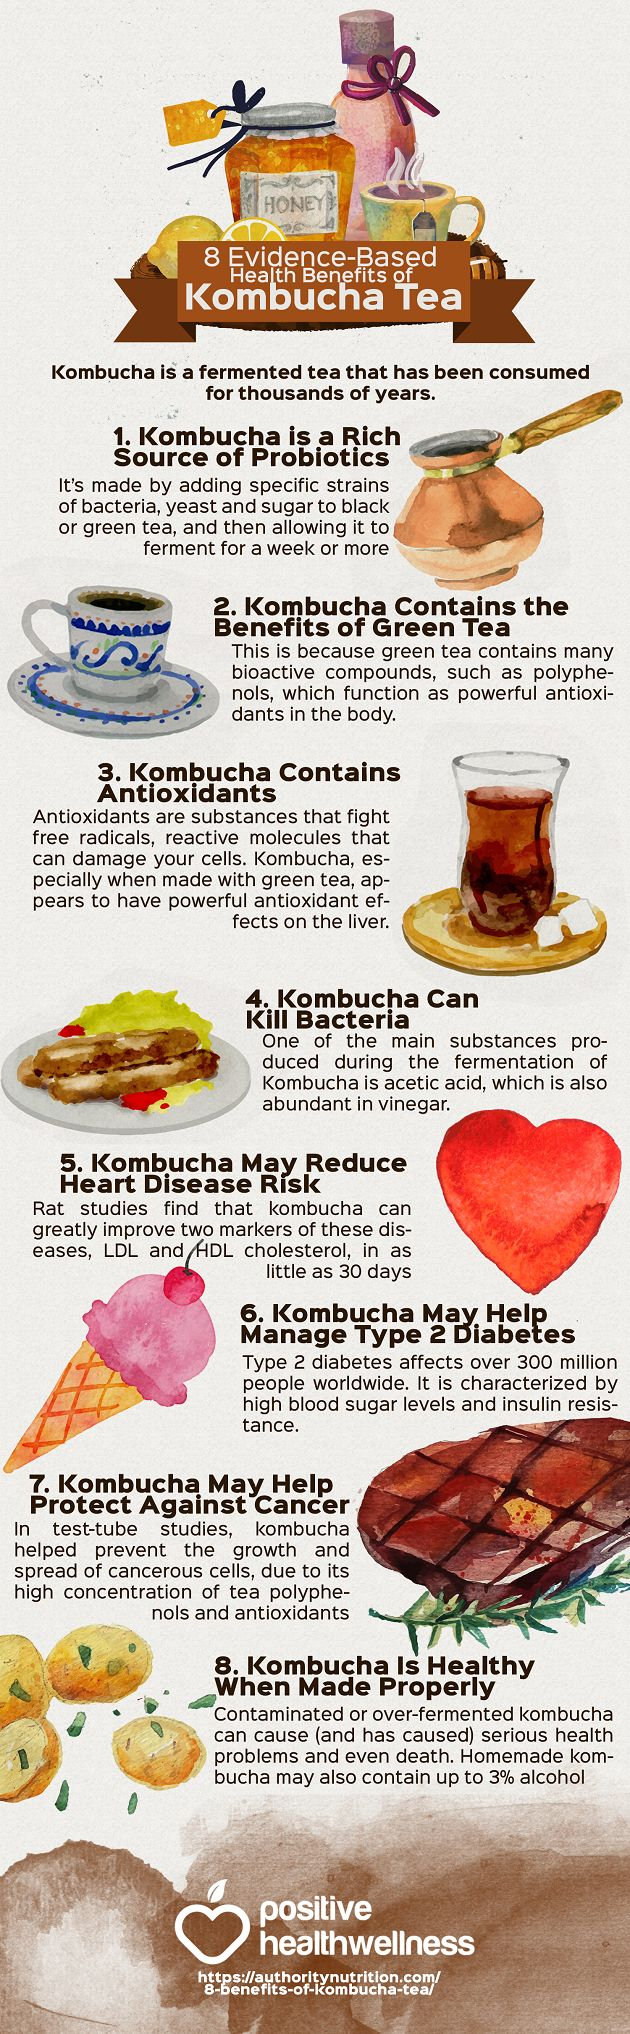 healthyhomosapien: 8 Evidence-Based Health Benefits of Kombucha Tea